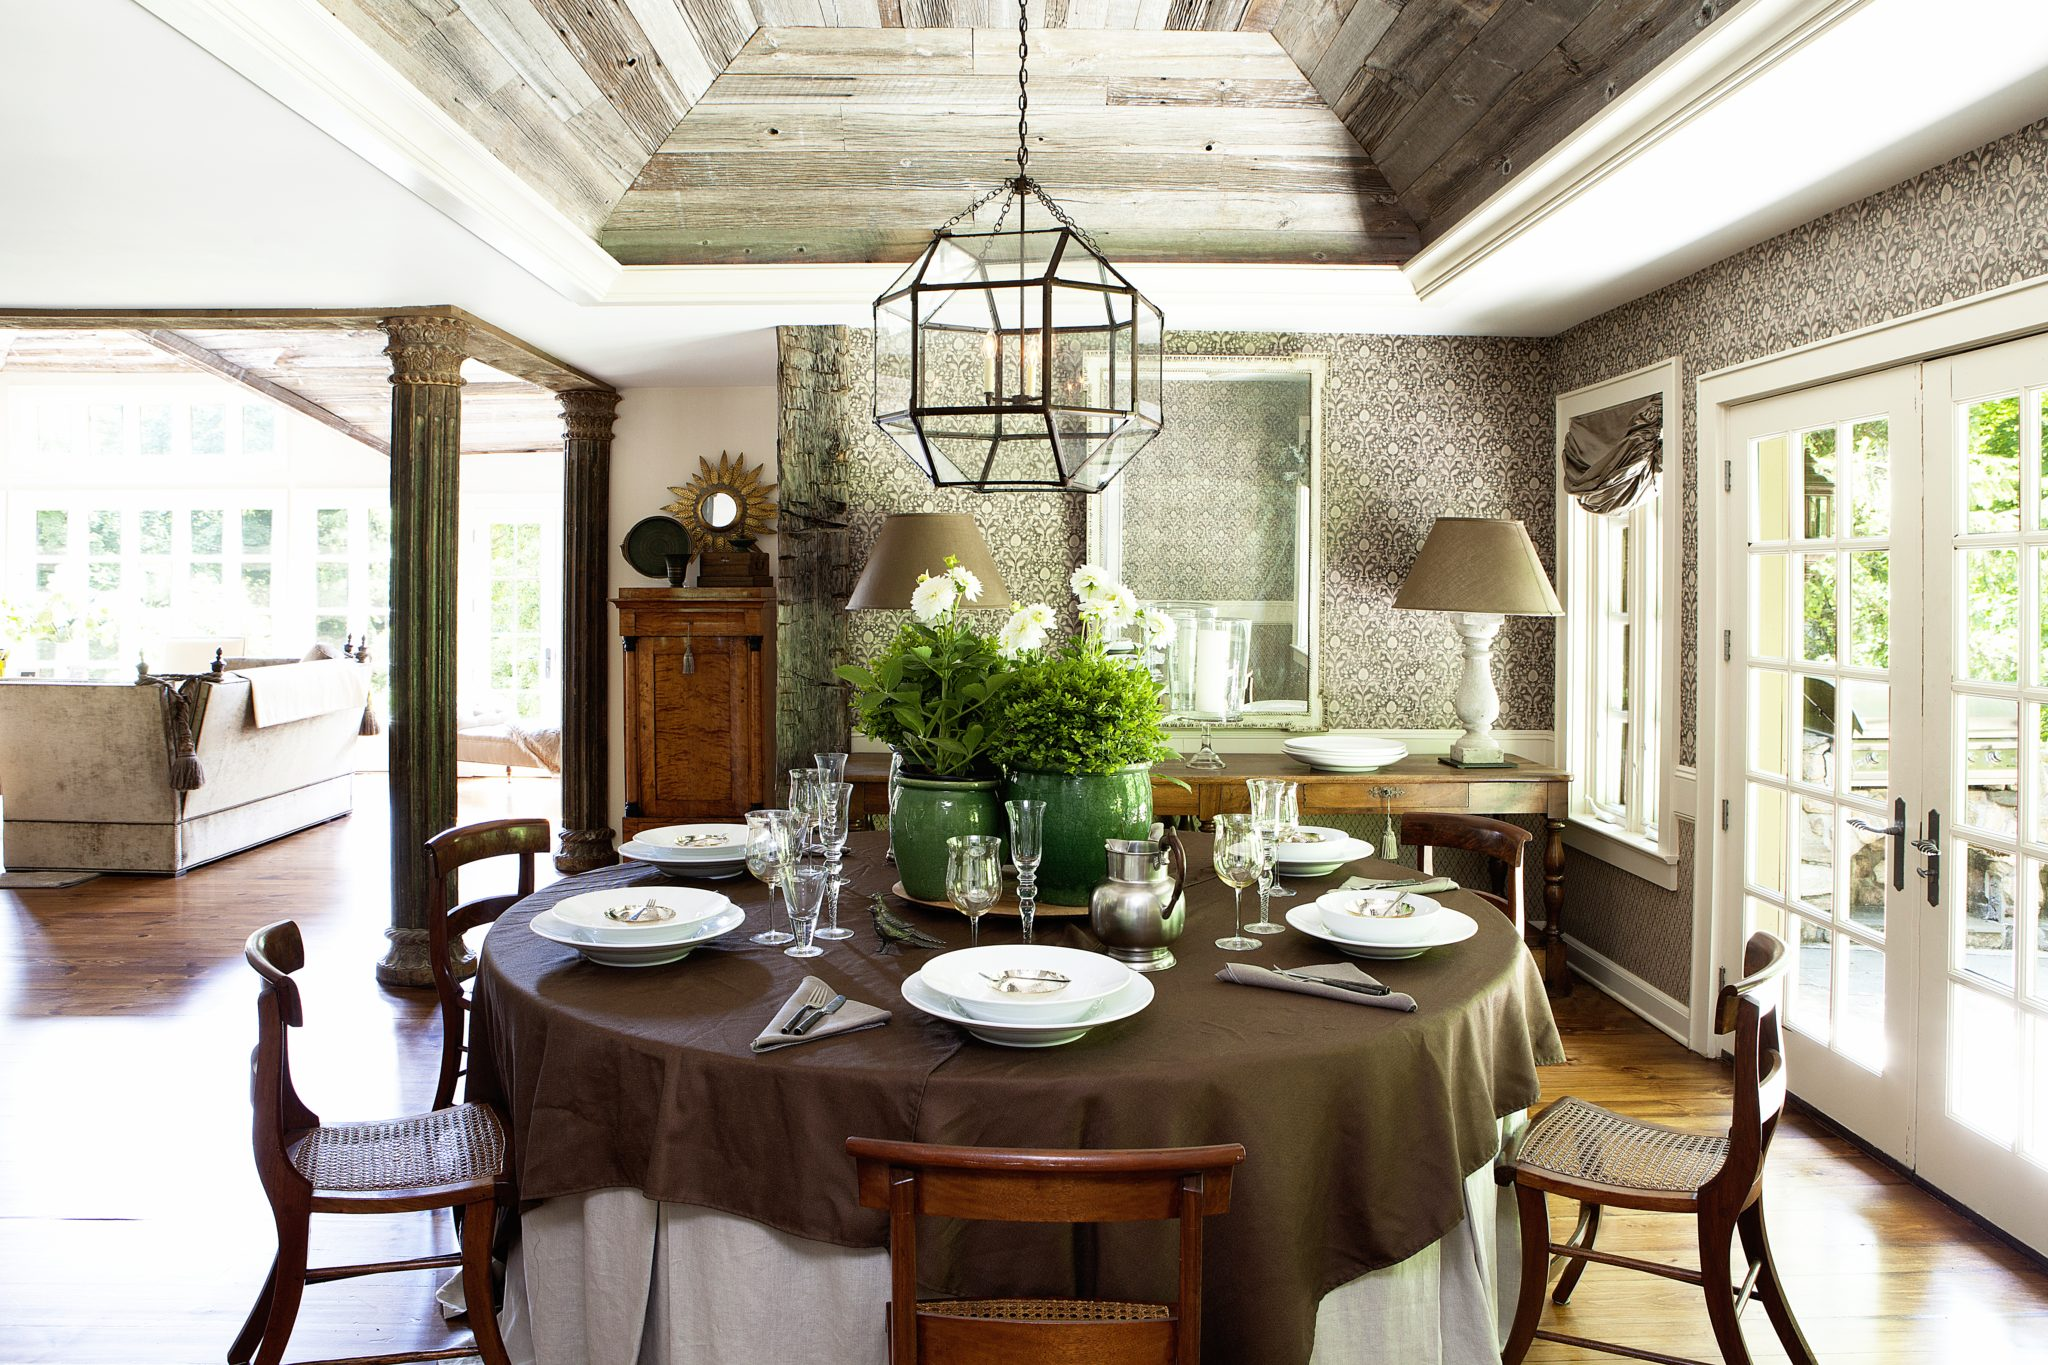 Table set for entertaining & outdoor pots filled with greenery. by Laura Michaels Design